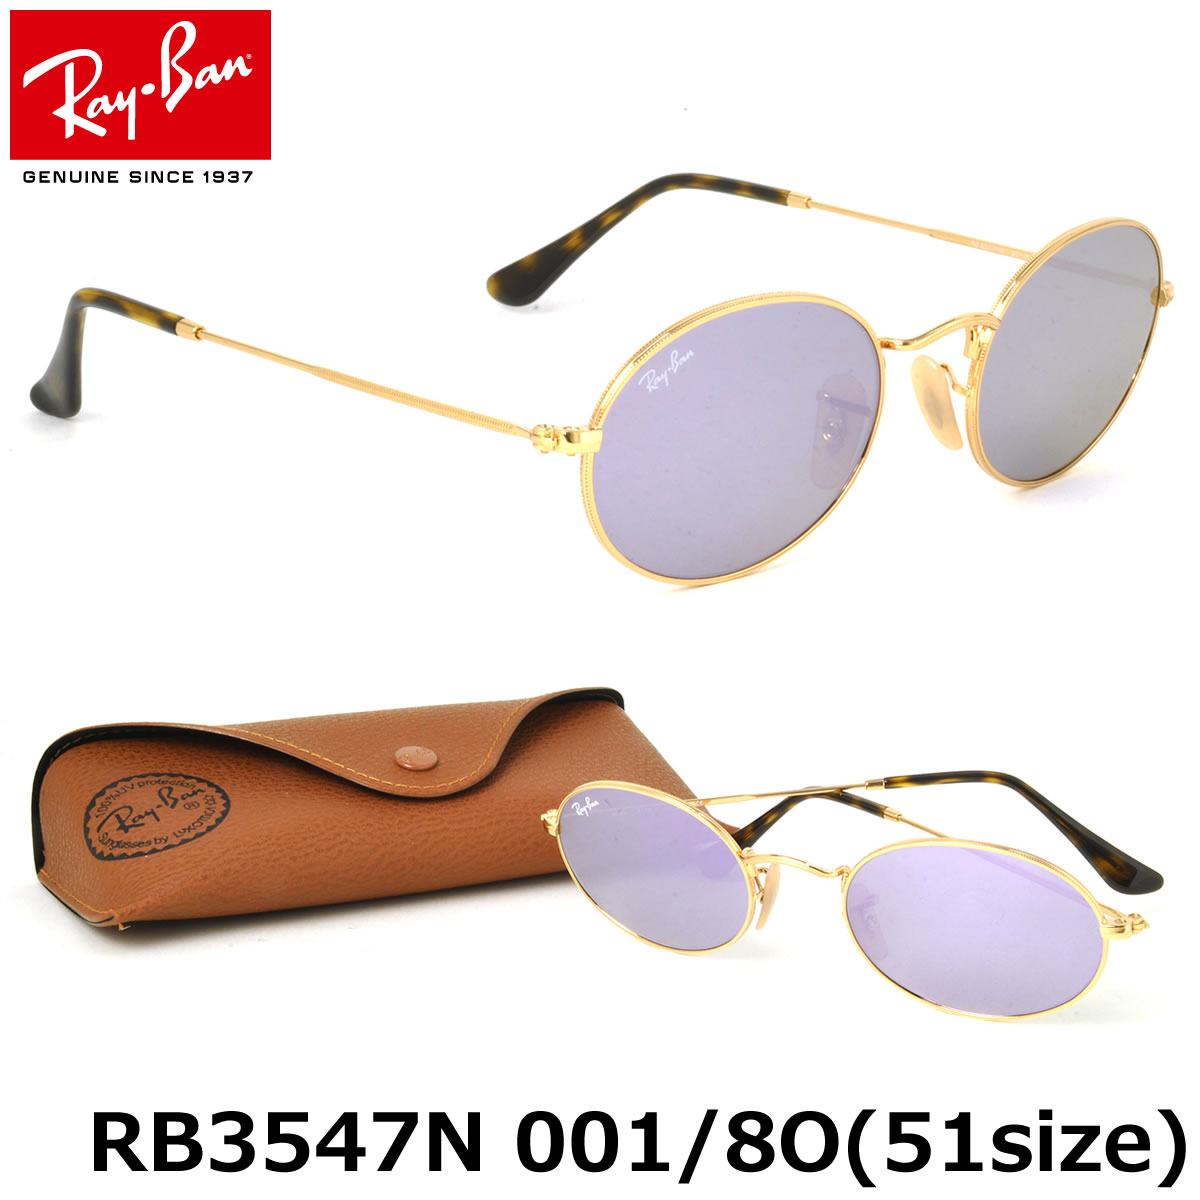 5c105df3f1 Optical Shop Thats  Ray-Ban Sunglasses RB3547N 001 8O 51size OVAL ...